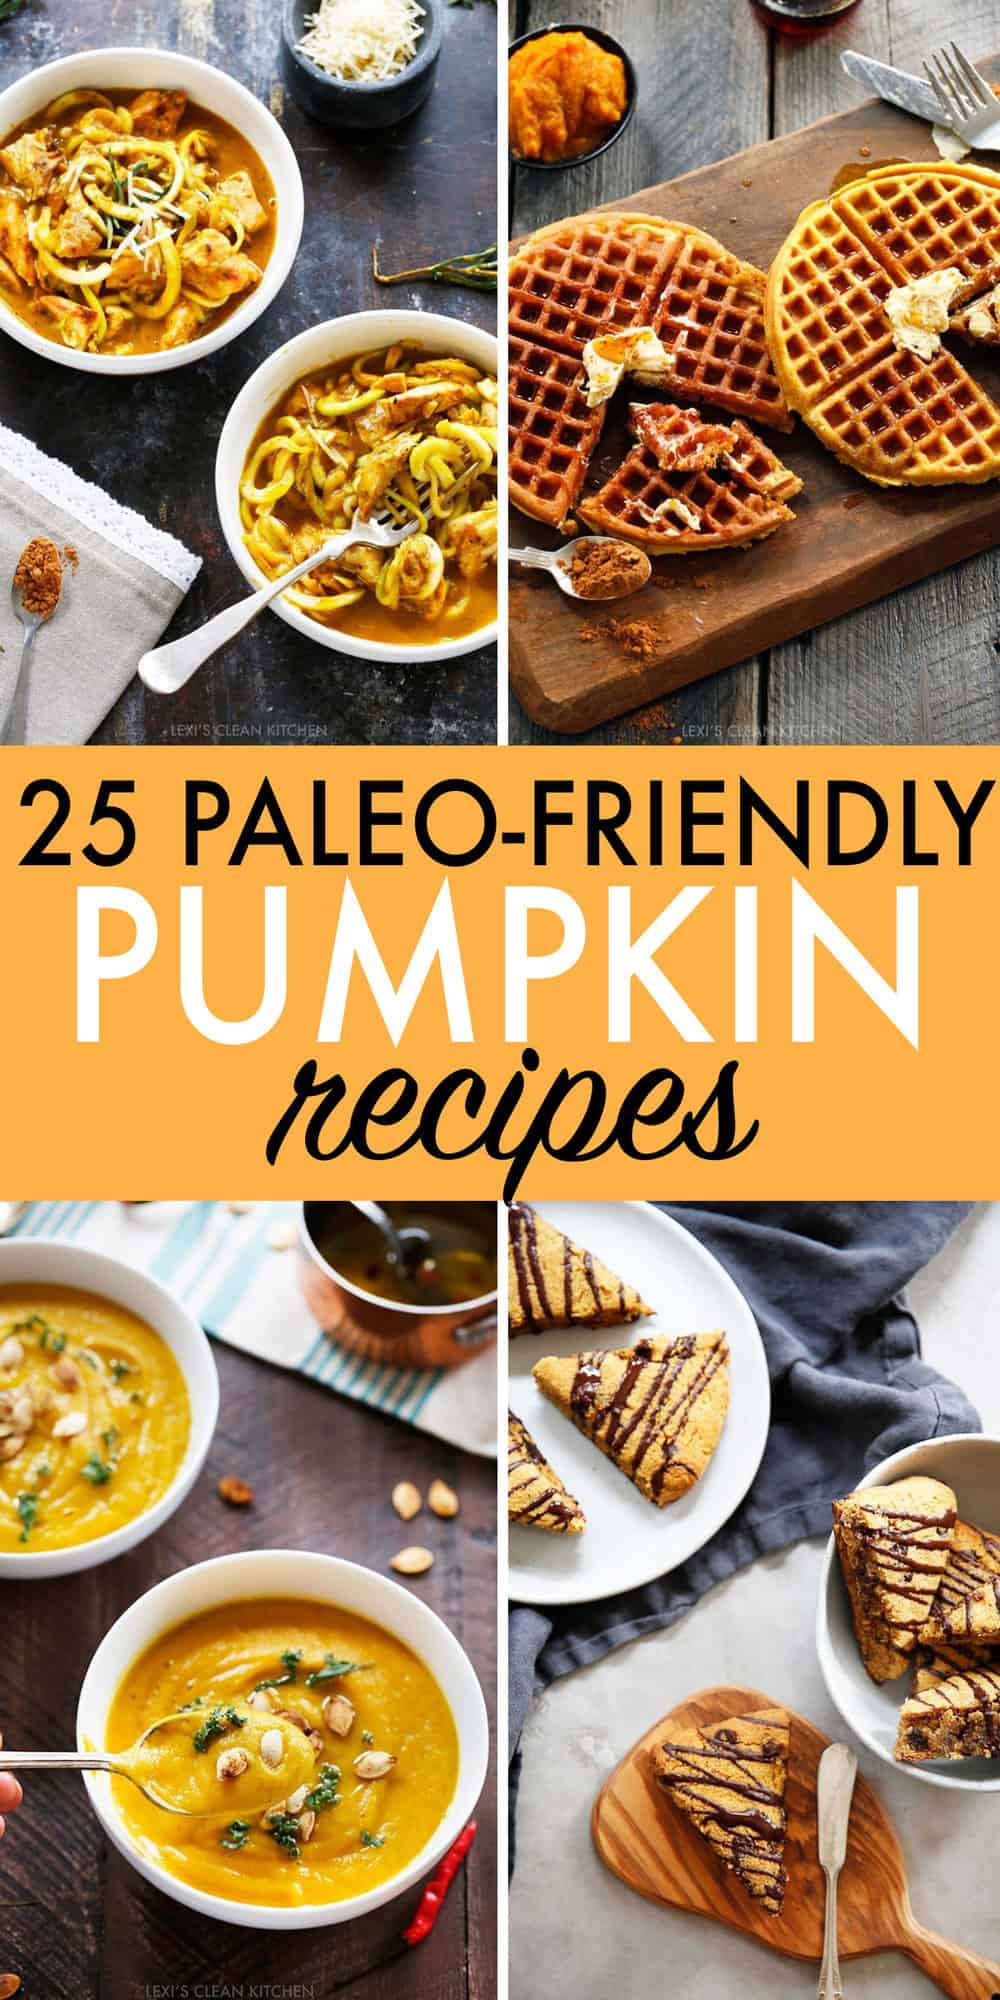 25 Paleo-Friendly Pumpkin Recipes to Make This Year - Lexi's Clean Kitchen